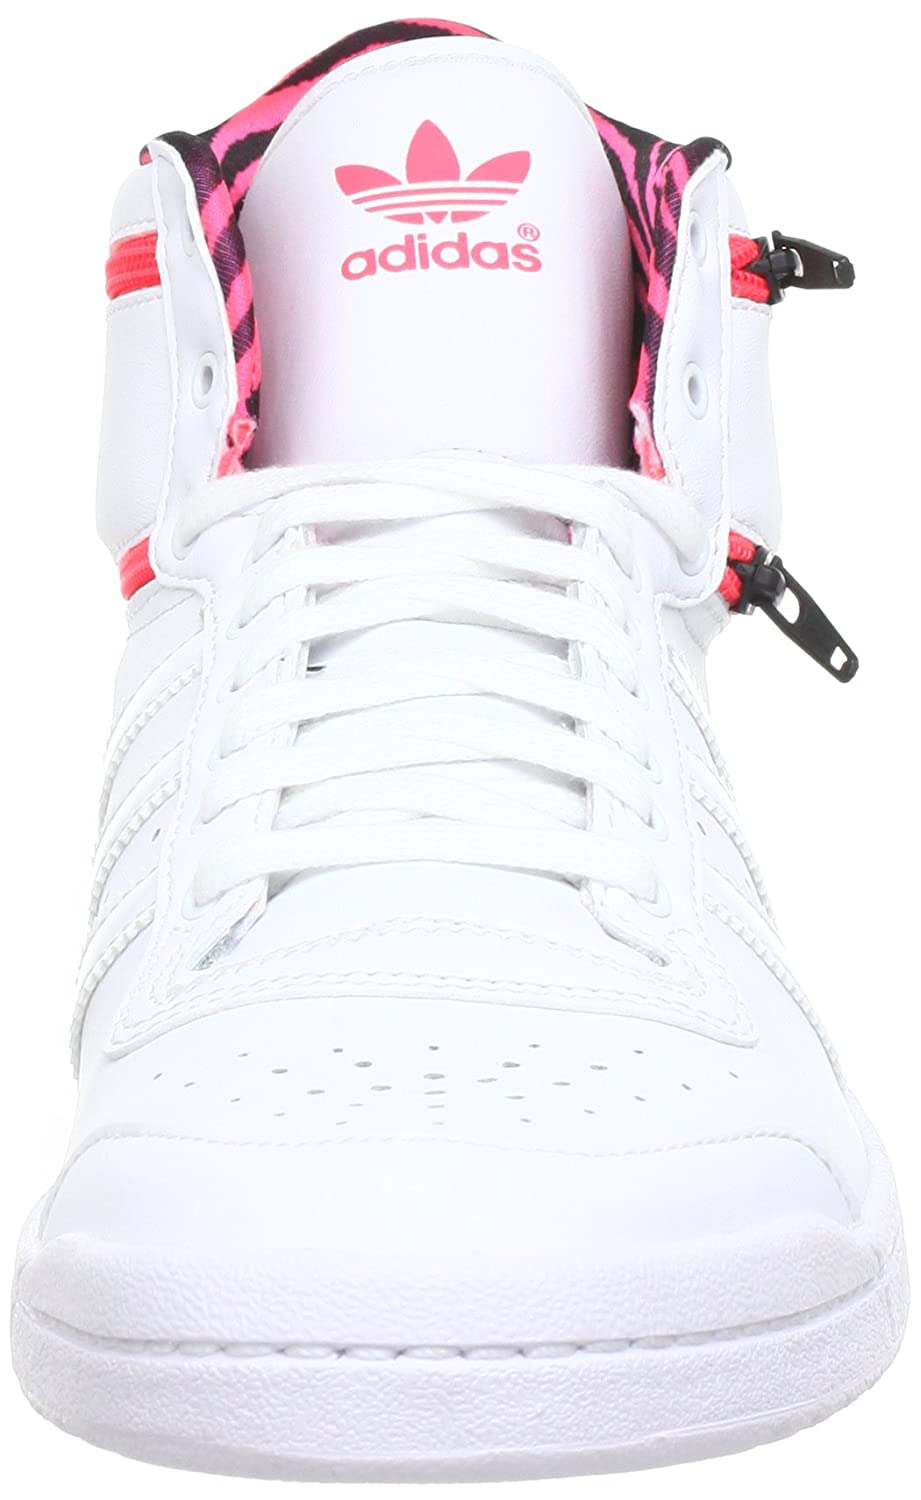 adidas Originals TOP TEN HI SLEEK ZIP W Q23630, Damen Sneaker, Weiß  (RUNNING WHITE FTW   RUNNING WHITE FTW   RED ZEST S13), EU 41 1 3 (UK 7.5)  (US 9)  ... 76ae4d3050